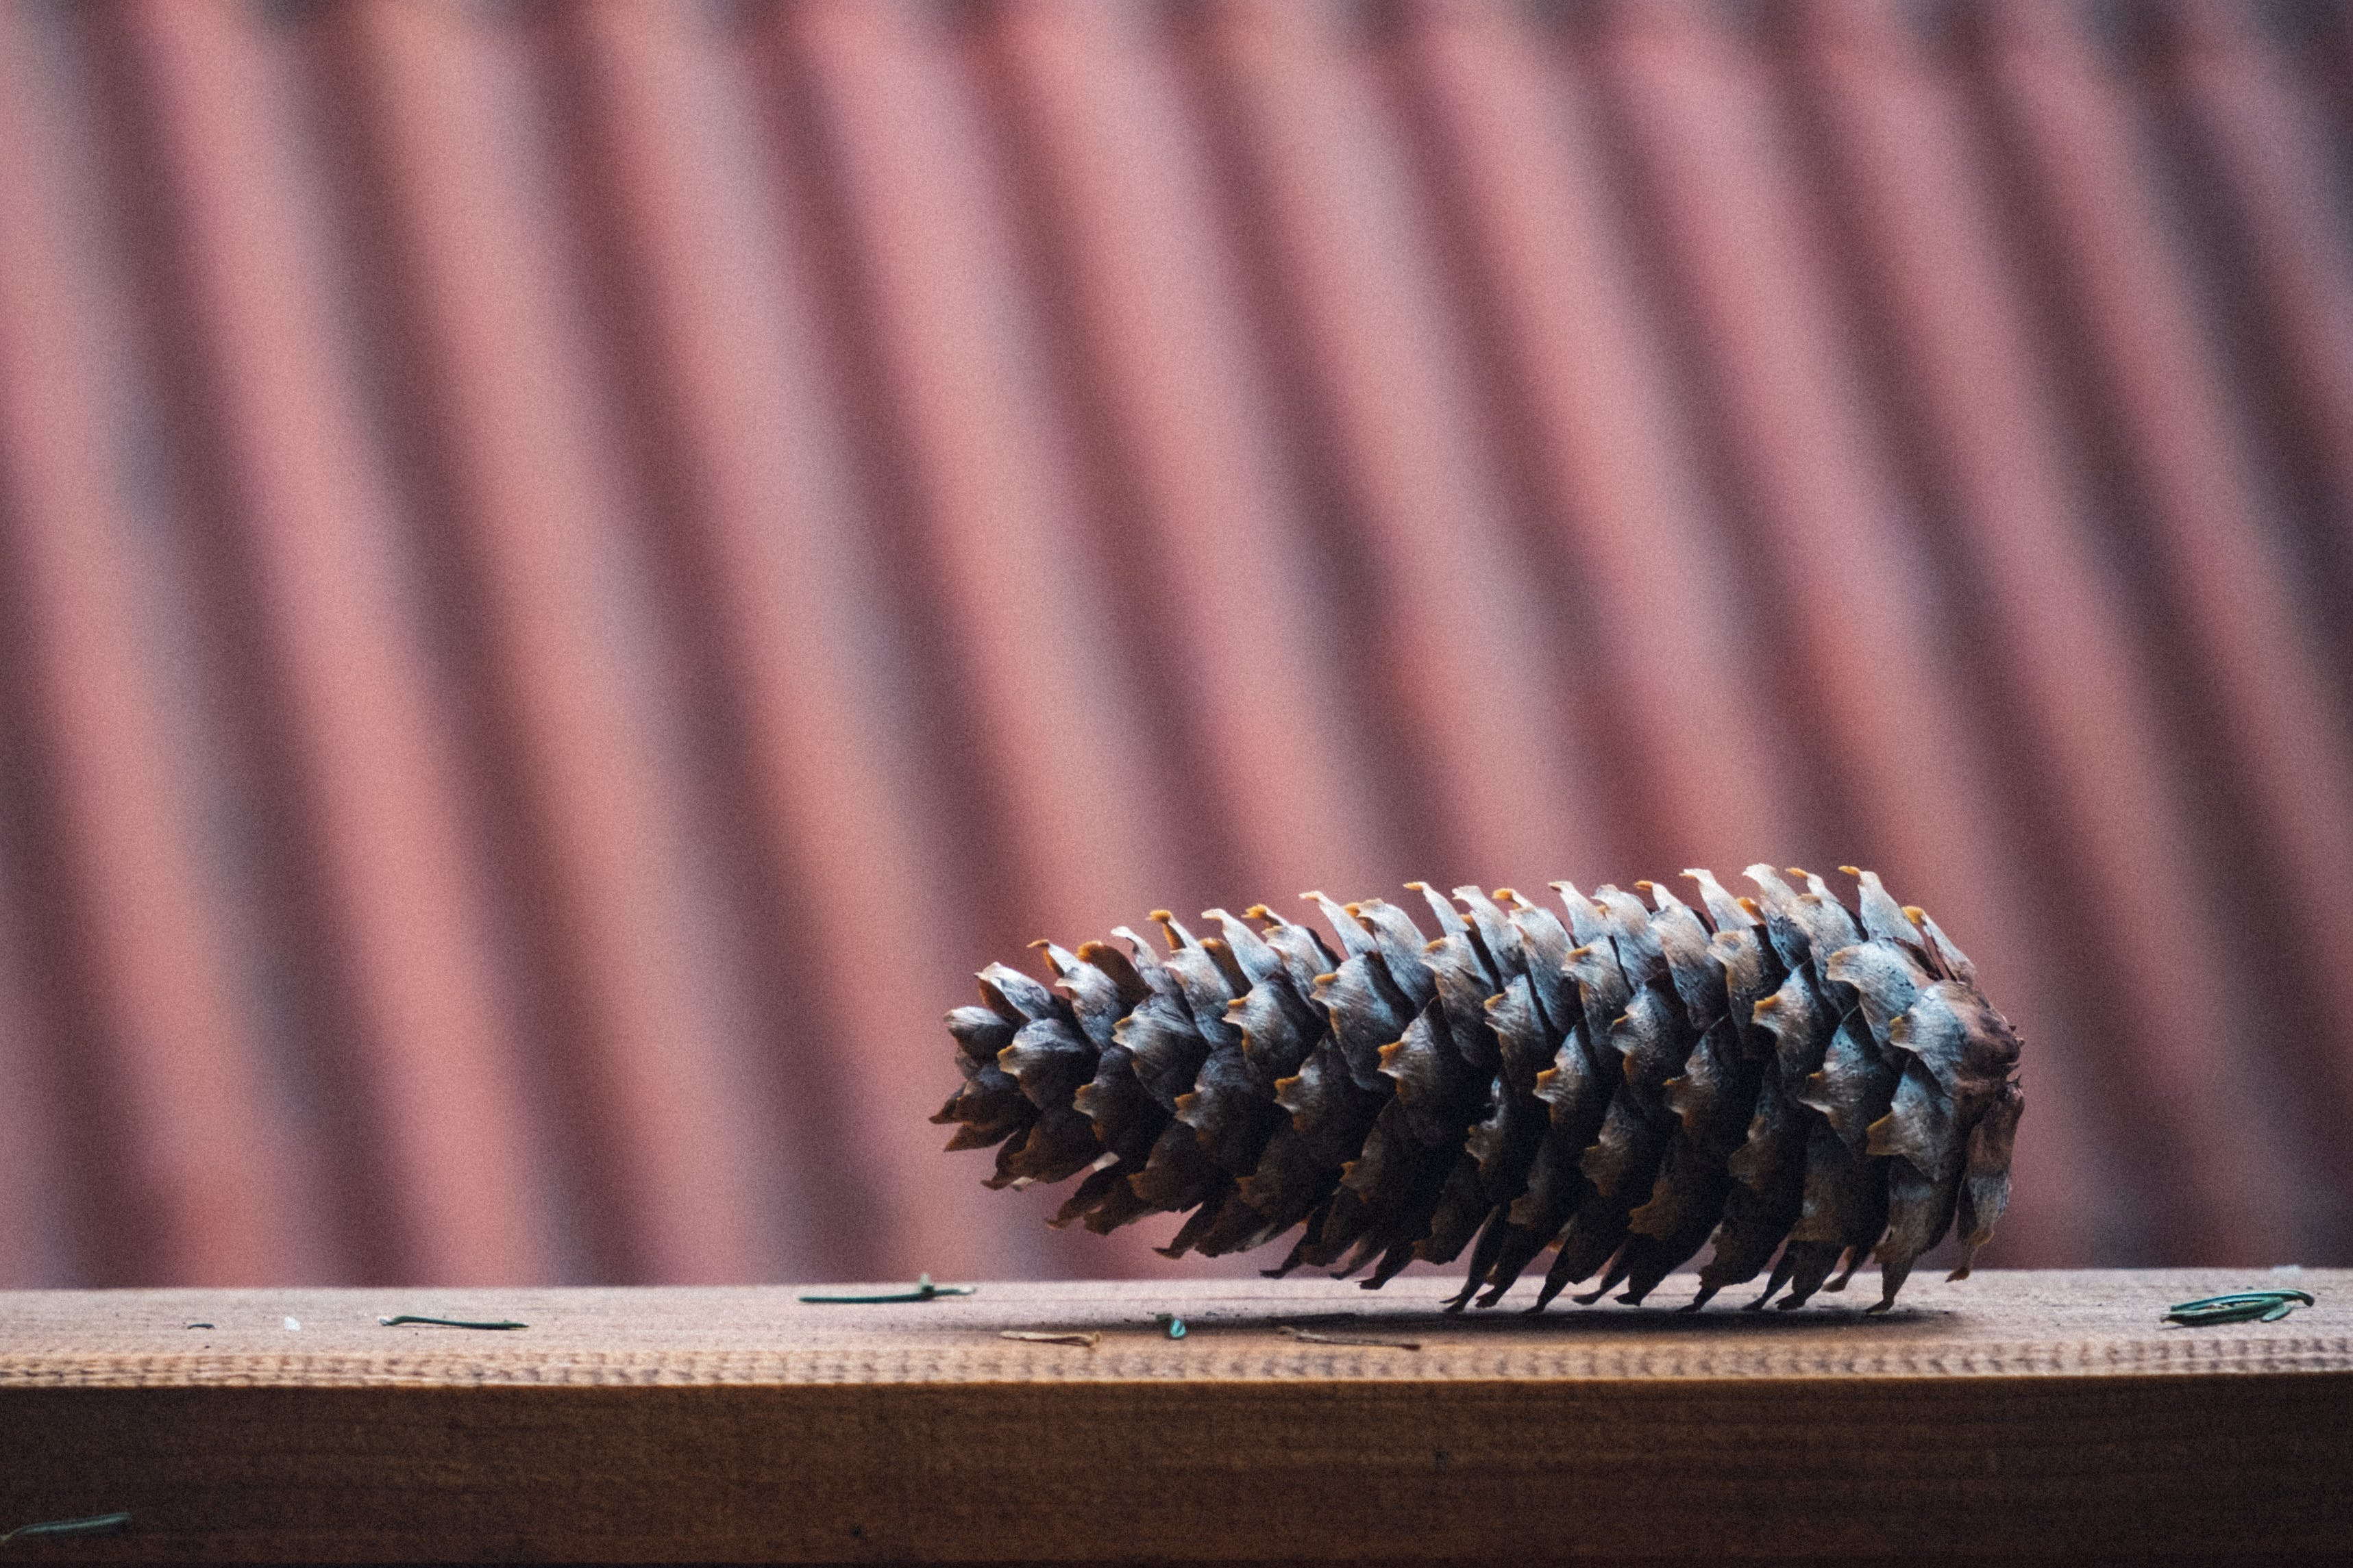 Brown Pinecone on Brown Wooden Surface